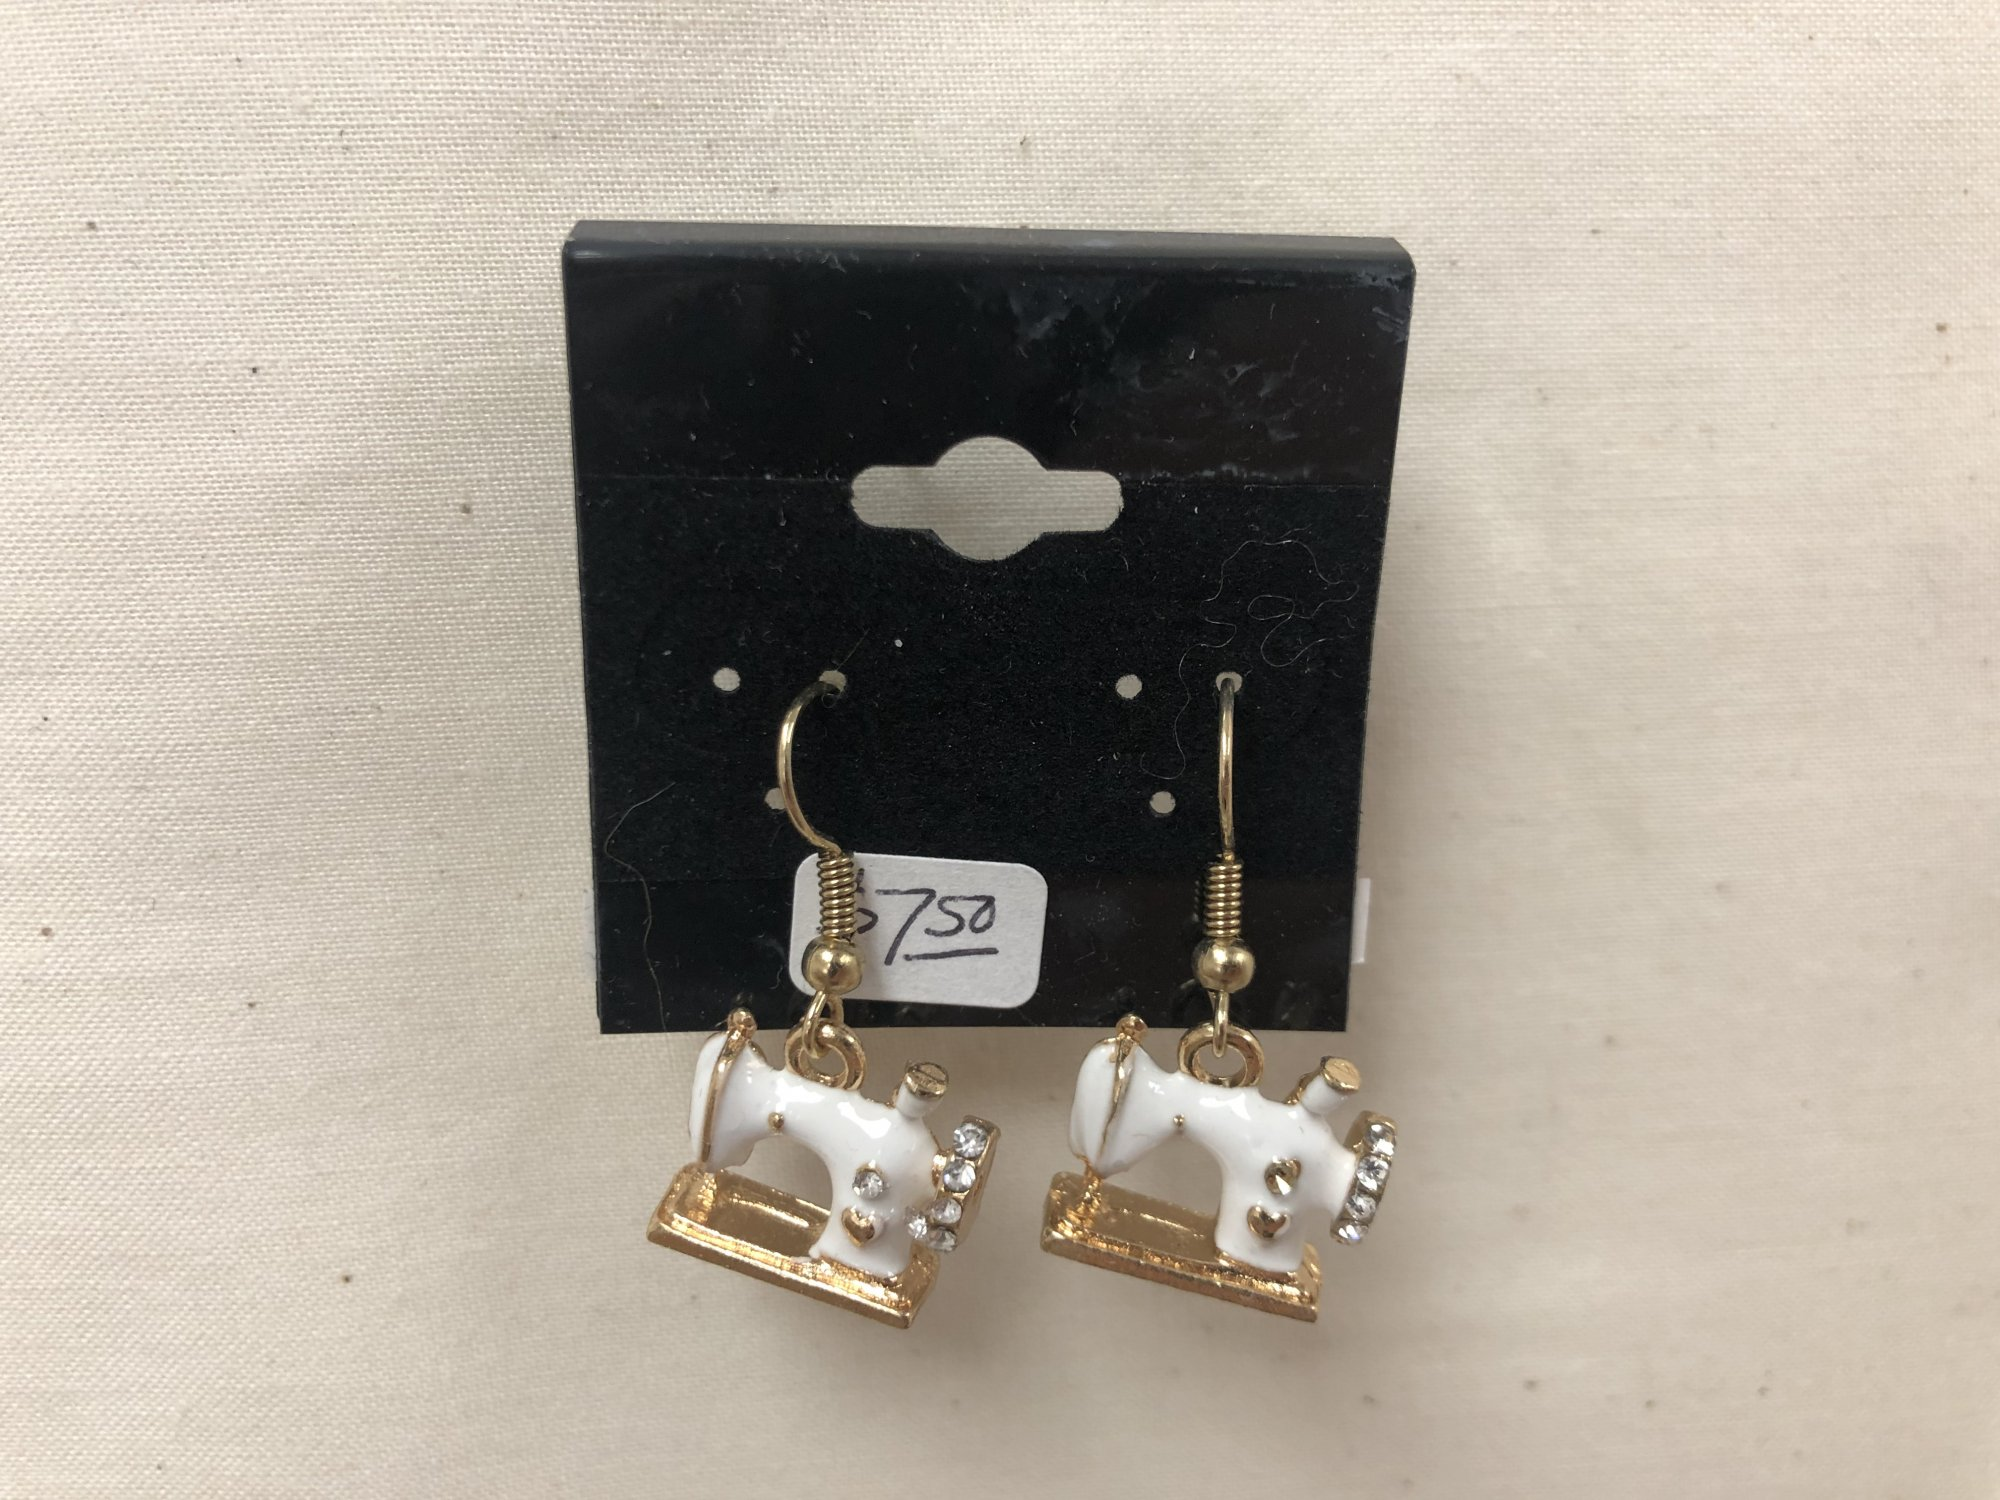 Sewing Machine Earrings (with gems)